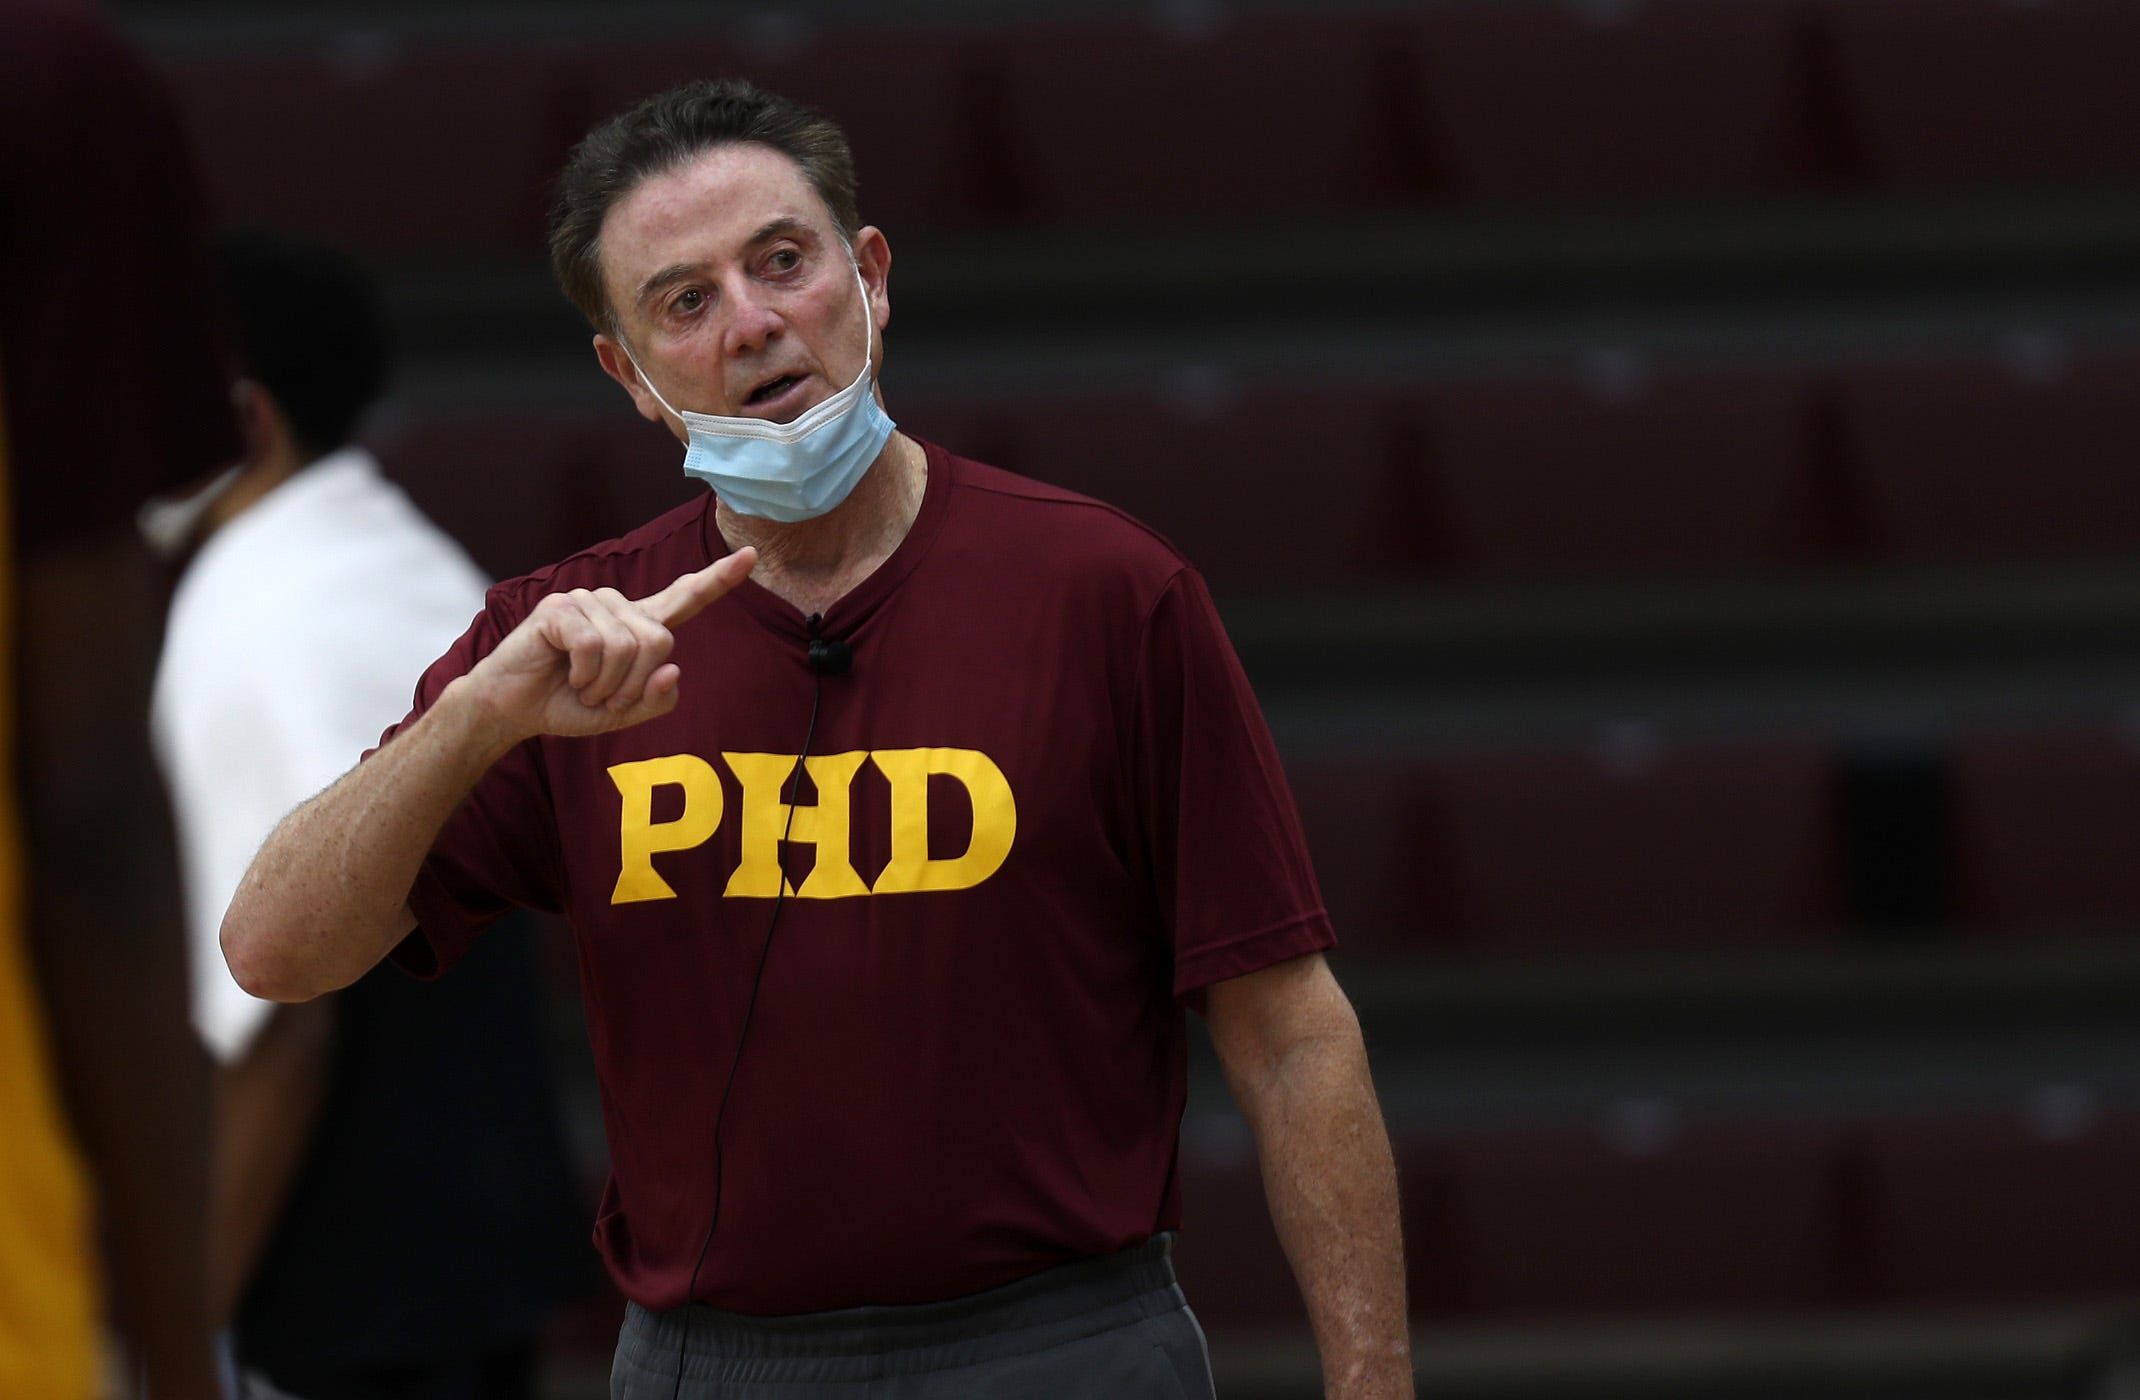 'It's an ending': Hall of Fame coach Rick Pitino makes his men's basketball comeback at Iona College